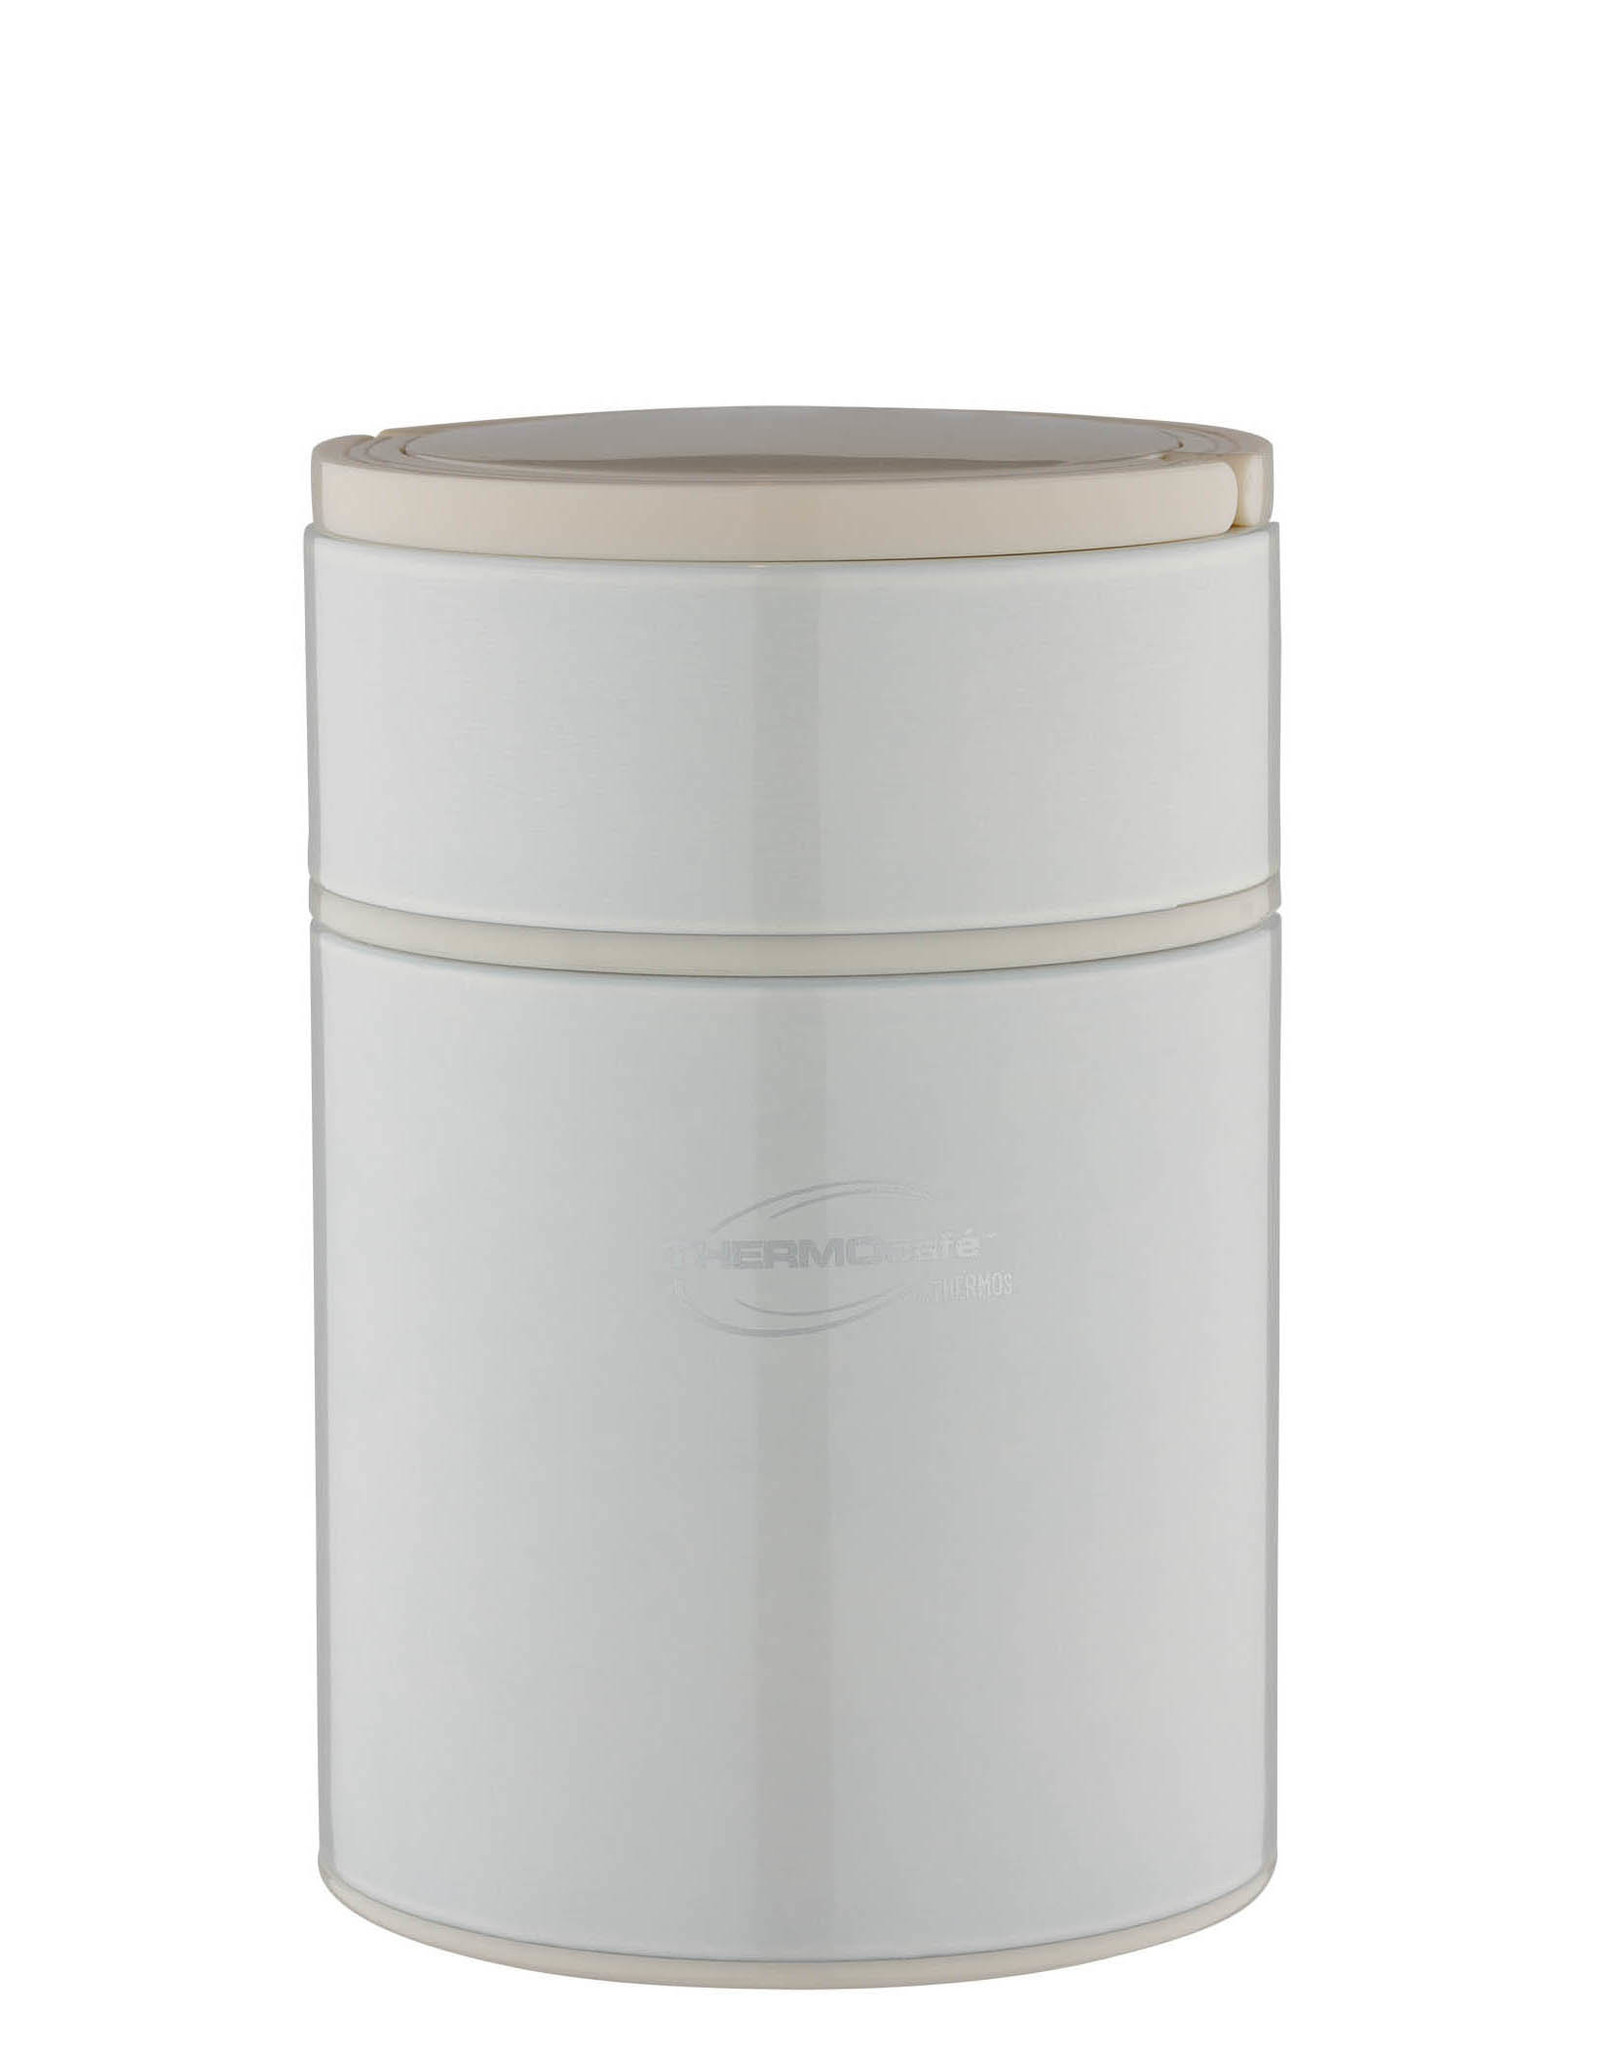 Термос для еды Thermocafe by Thermos Arctic Food Jar (0,5 литра), белый